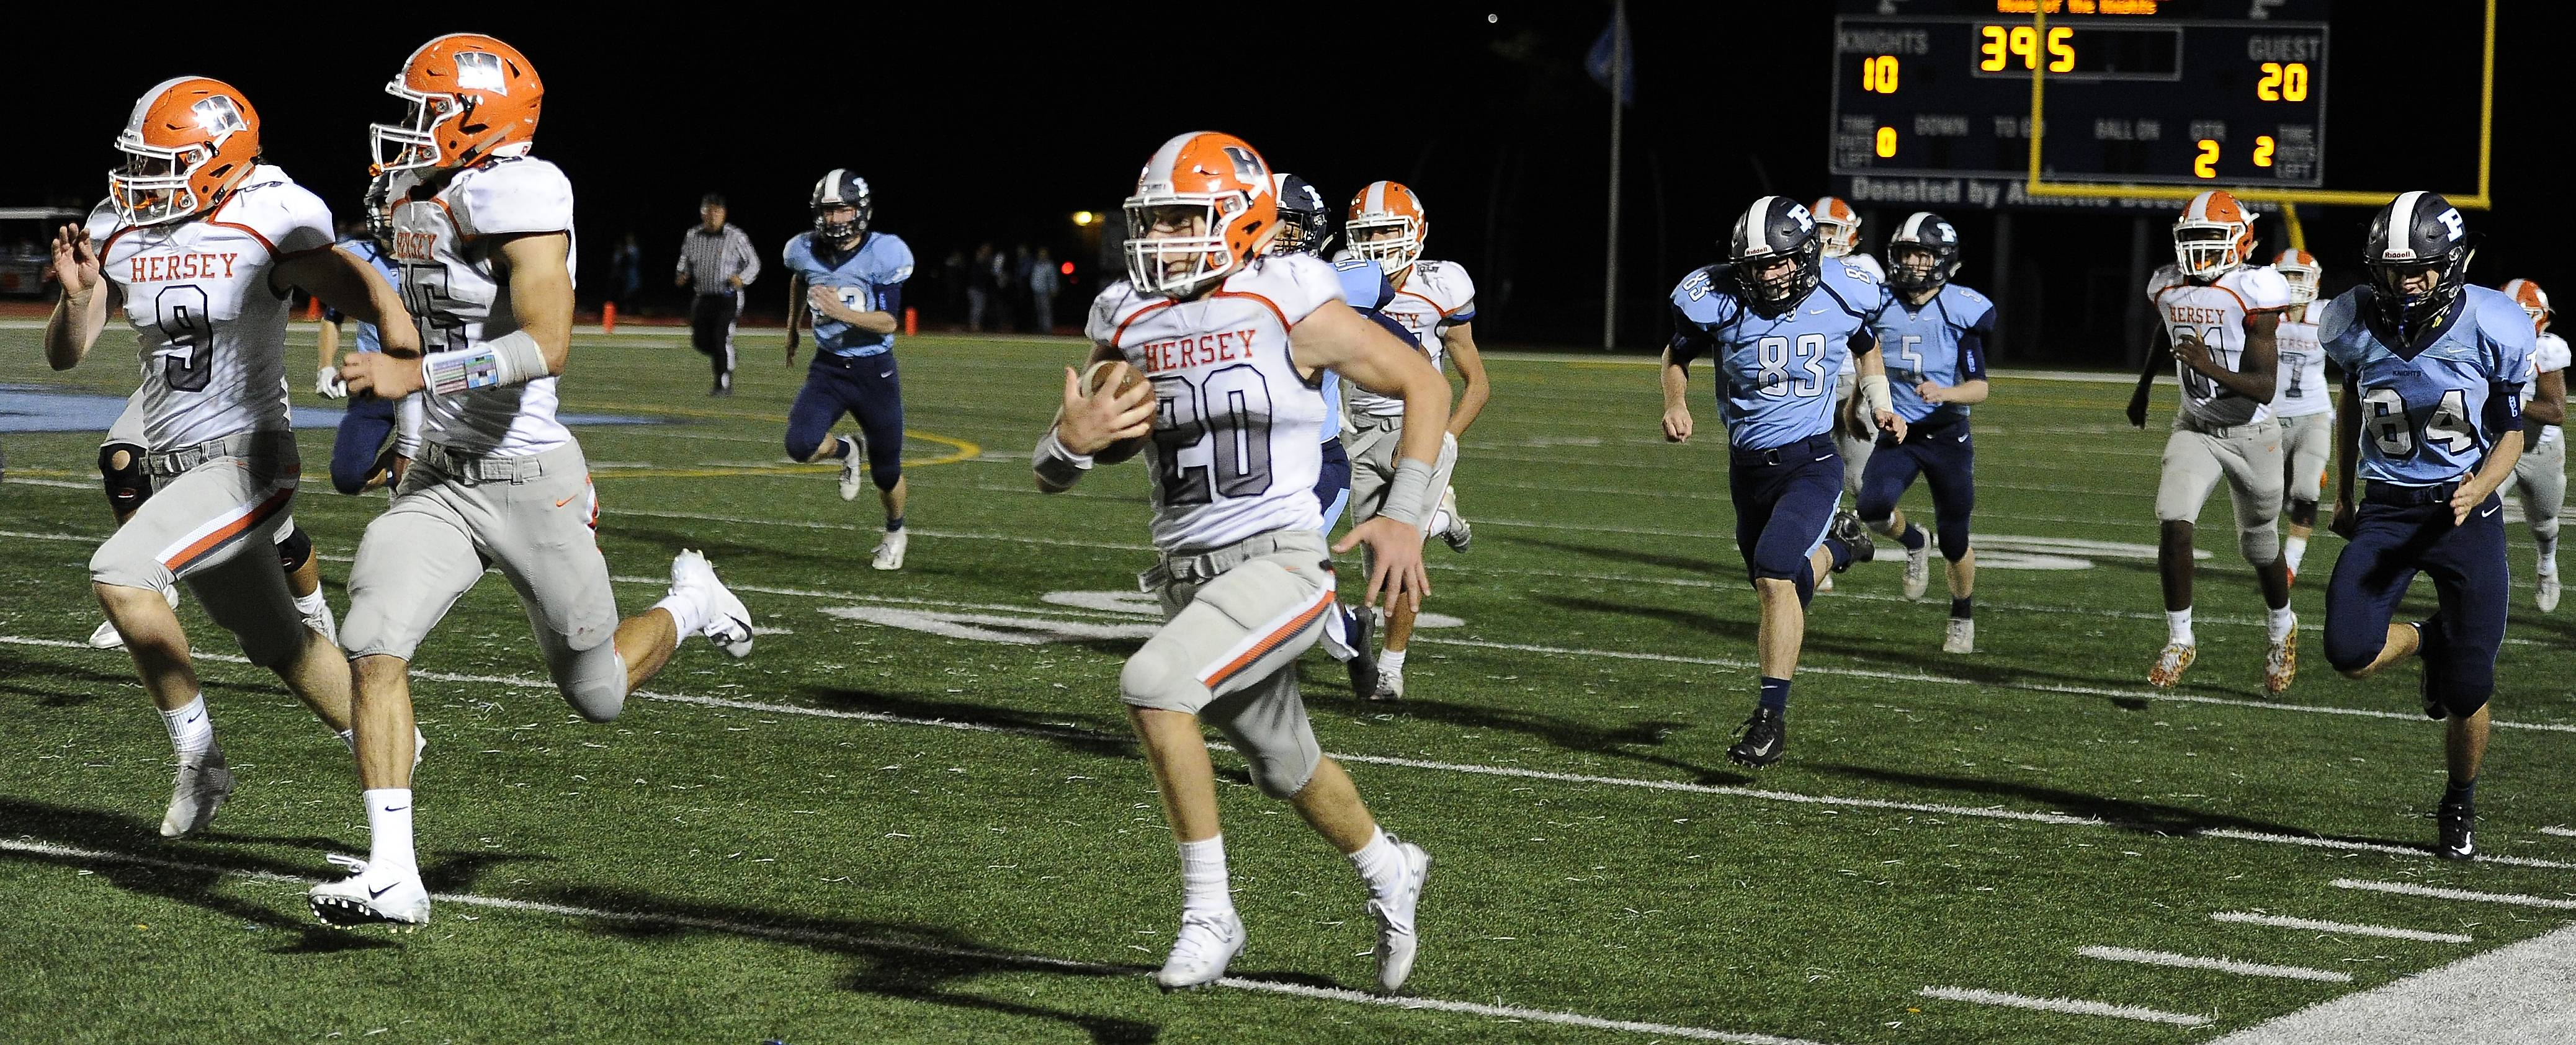 Hersey's Vince Carso runs back a 92-yard punt return late in the second quarter against Prospect last week. Hersey looks to go 6-0 Friday night when the Huskies host Buffalo Grove.